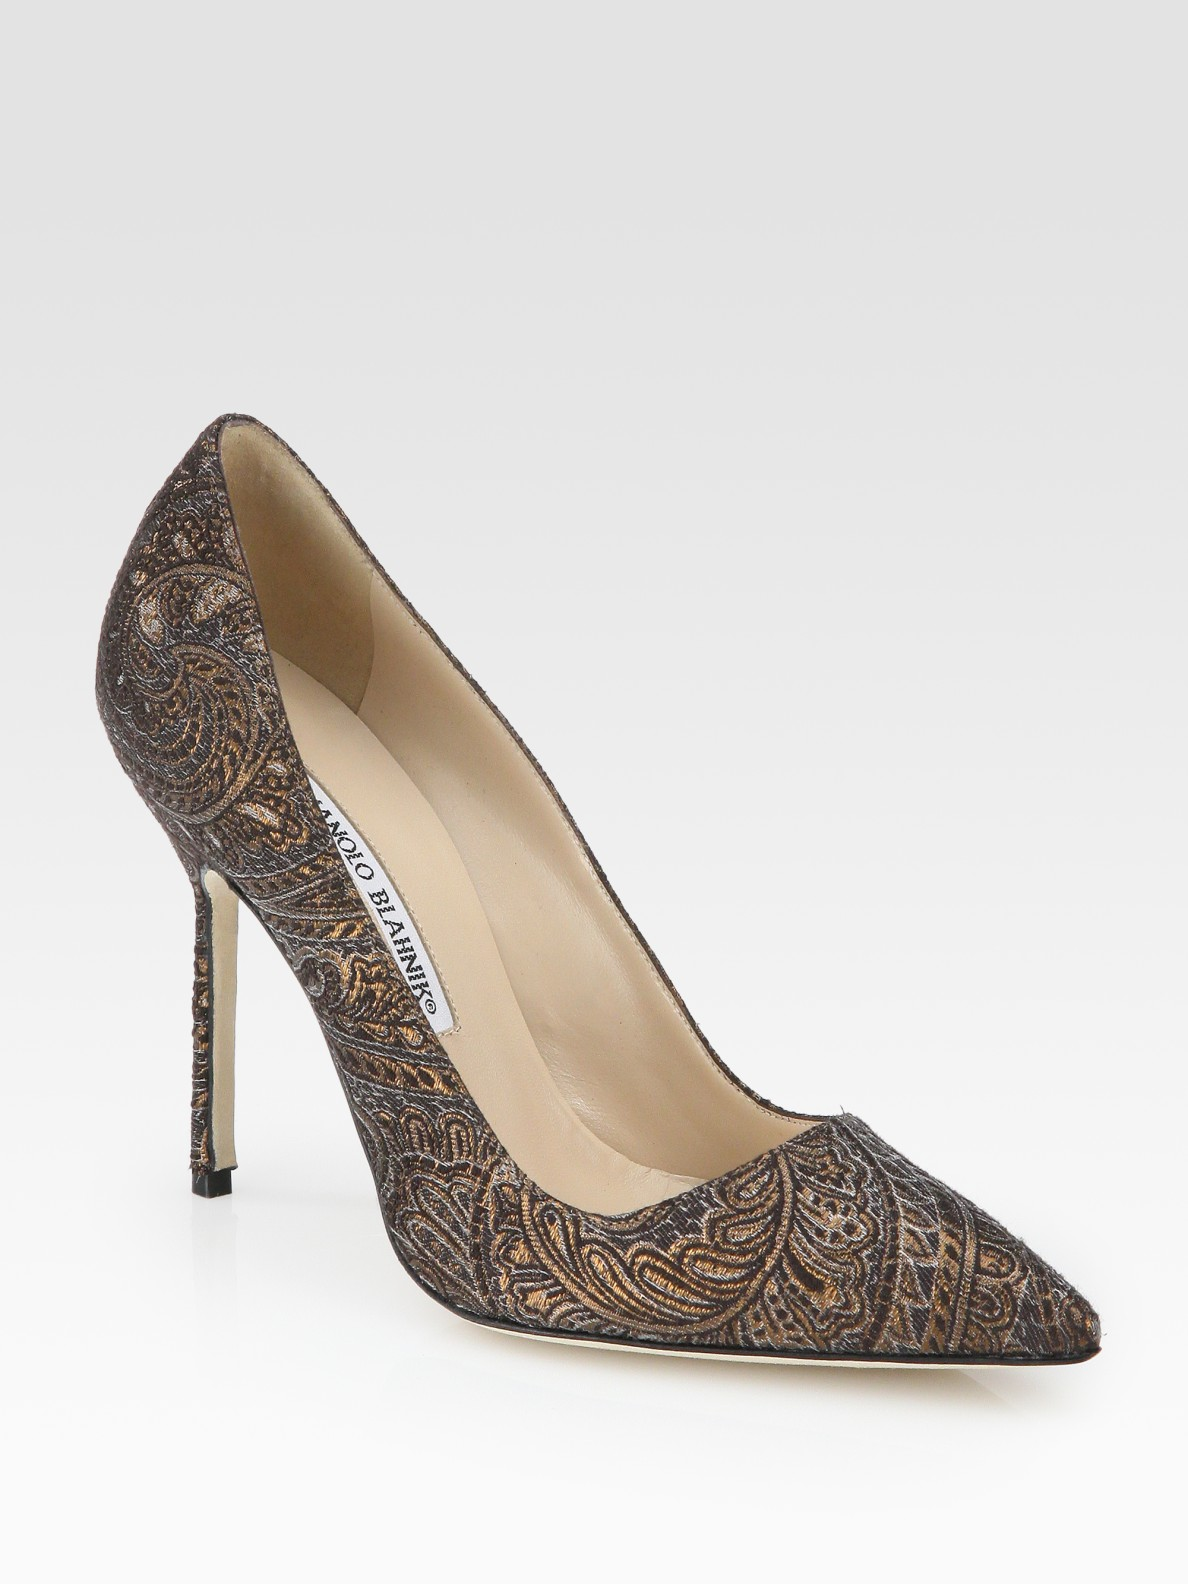 Manolo blahnik bb brocade pumps in brown black lyst for Shoe designer manolo blahnik